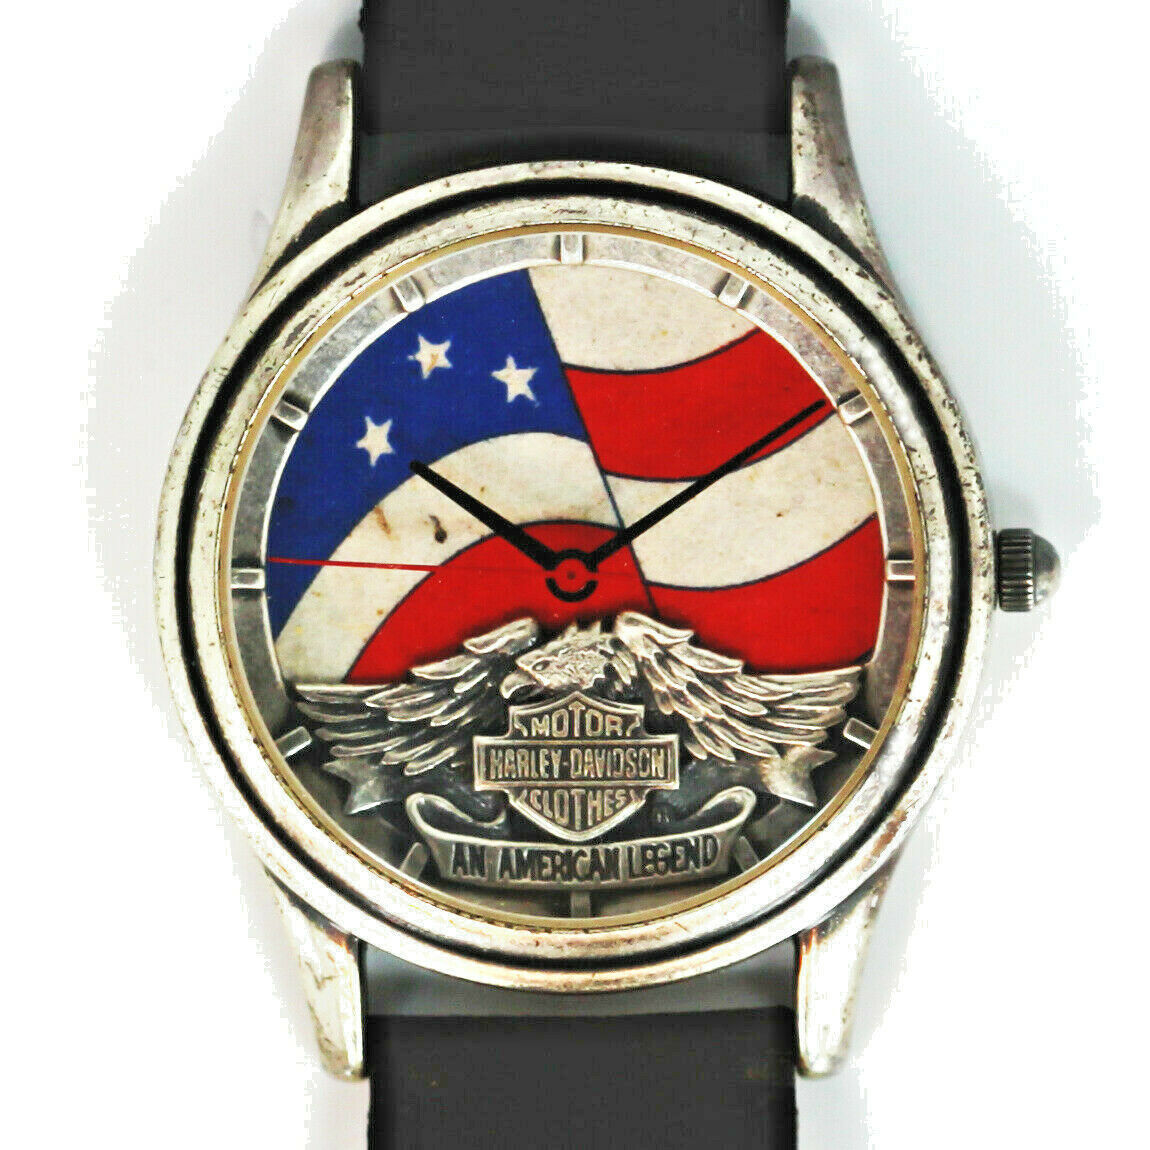 Primary image for Harley Davidson Vintage Unworn Stars And Stripes Dial, Extremely Rare Watch $129